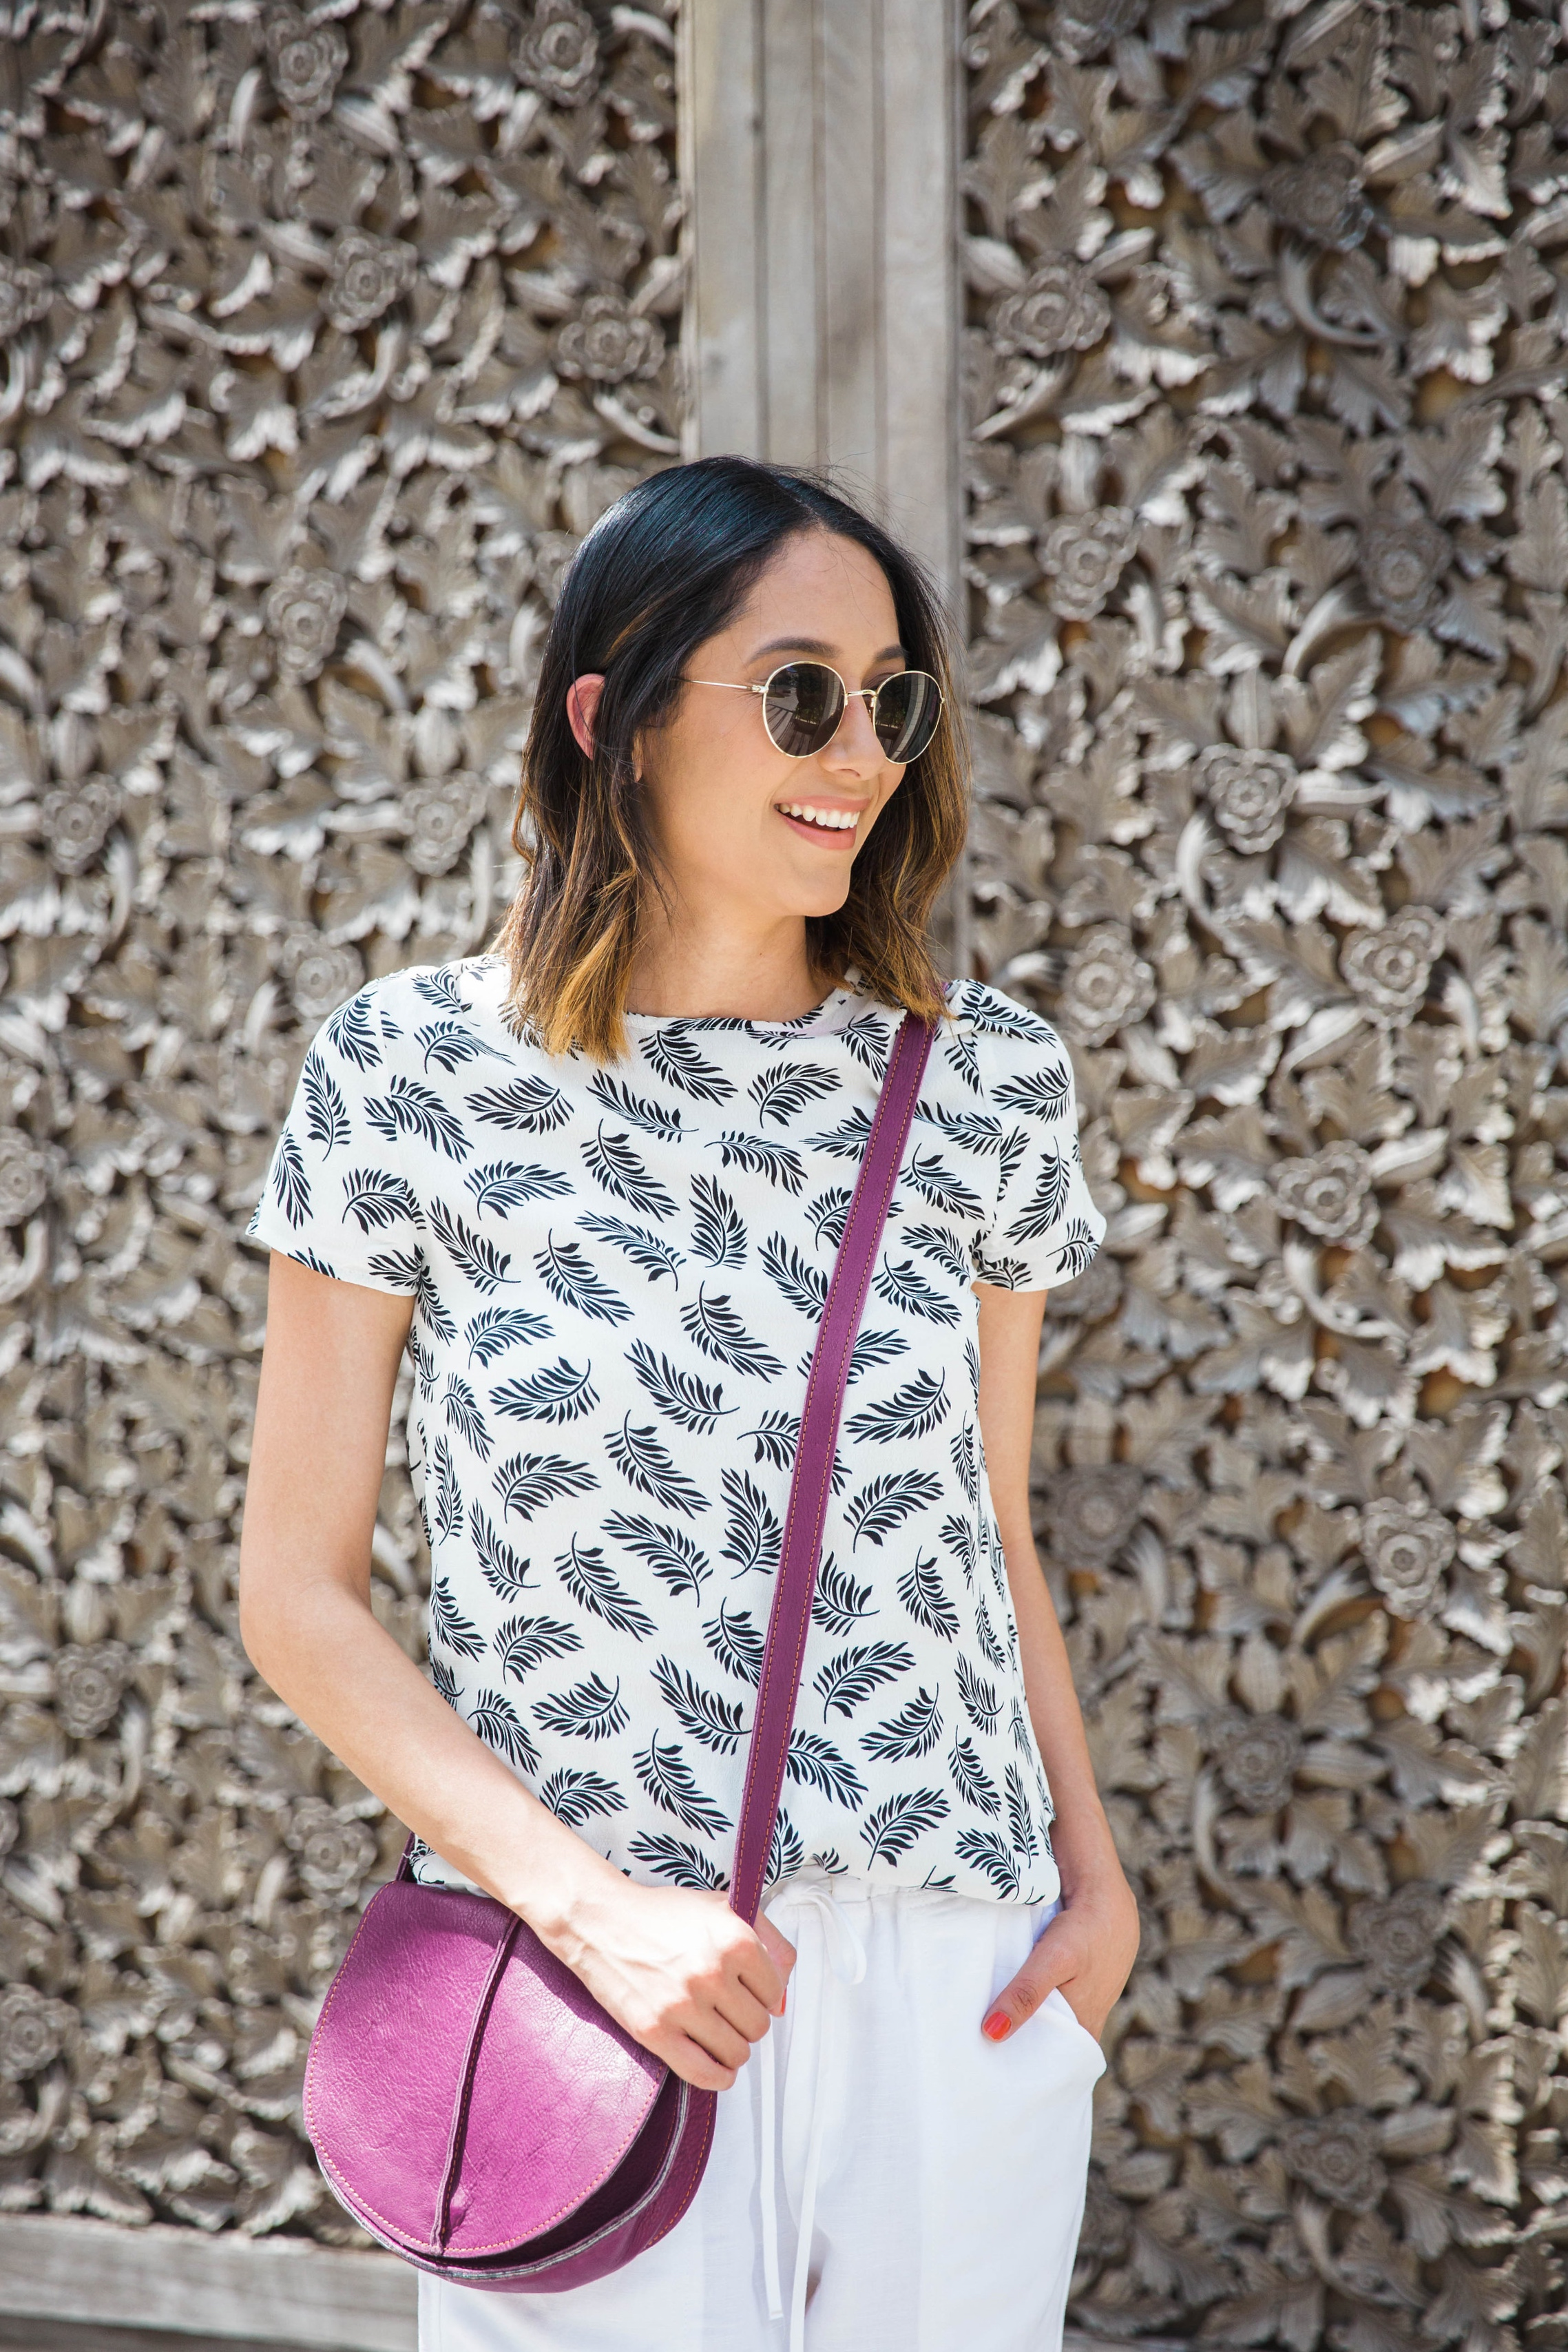 Feather Print Top | Pop Of Color | Summer Whites | Summer Look | Fresh Summer Look